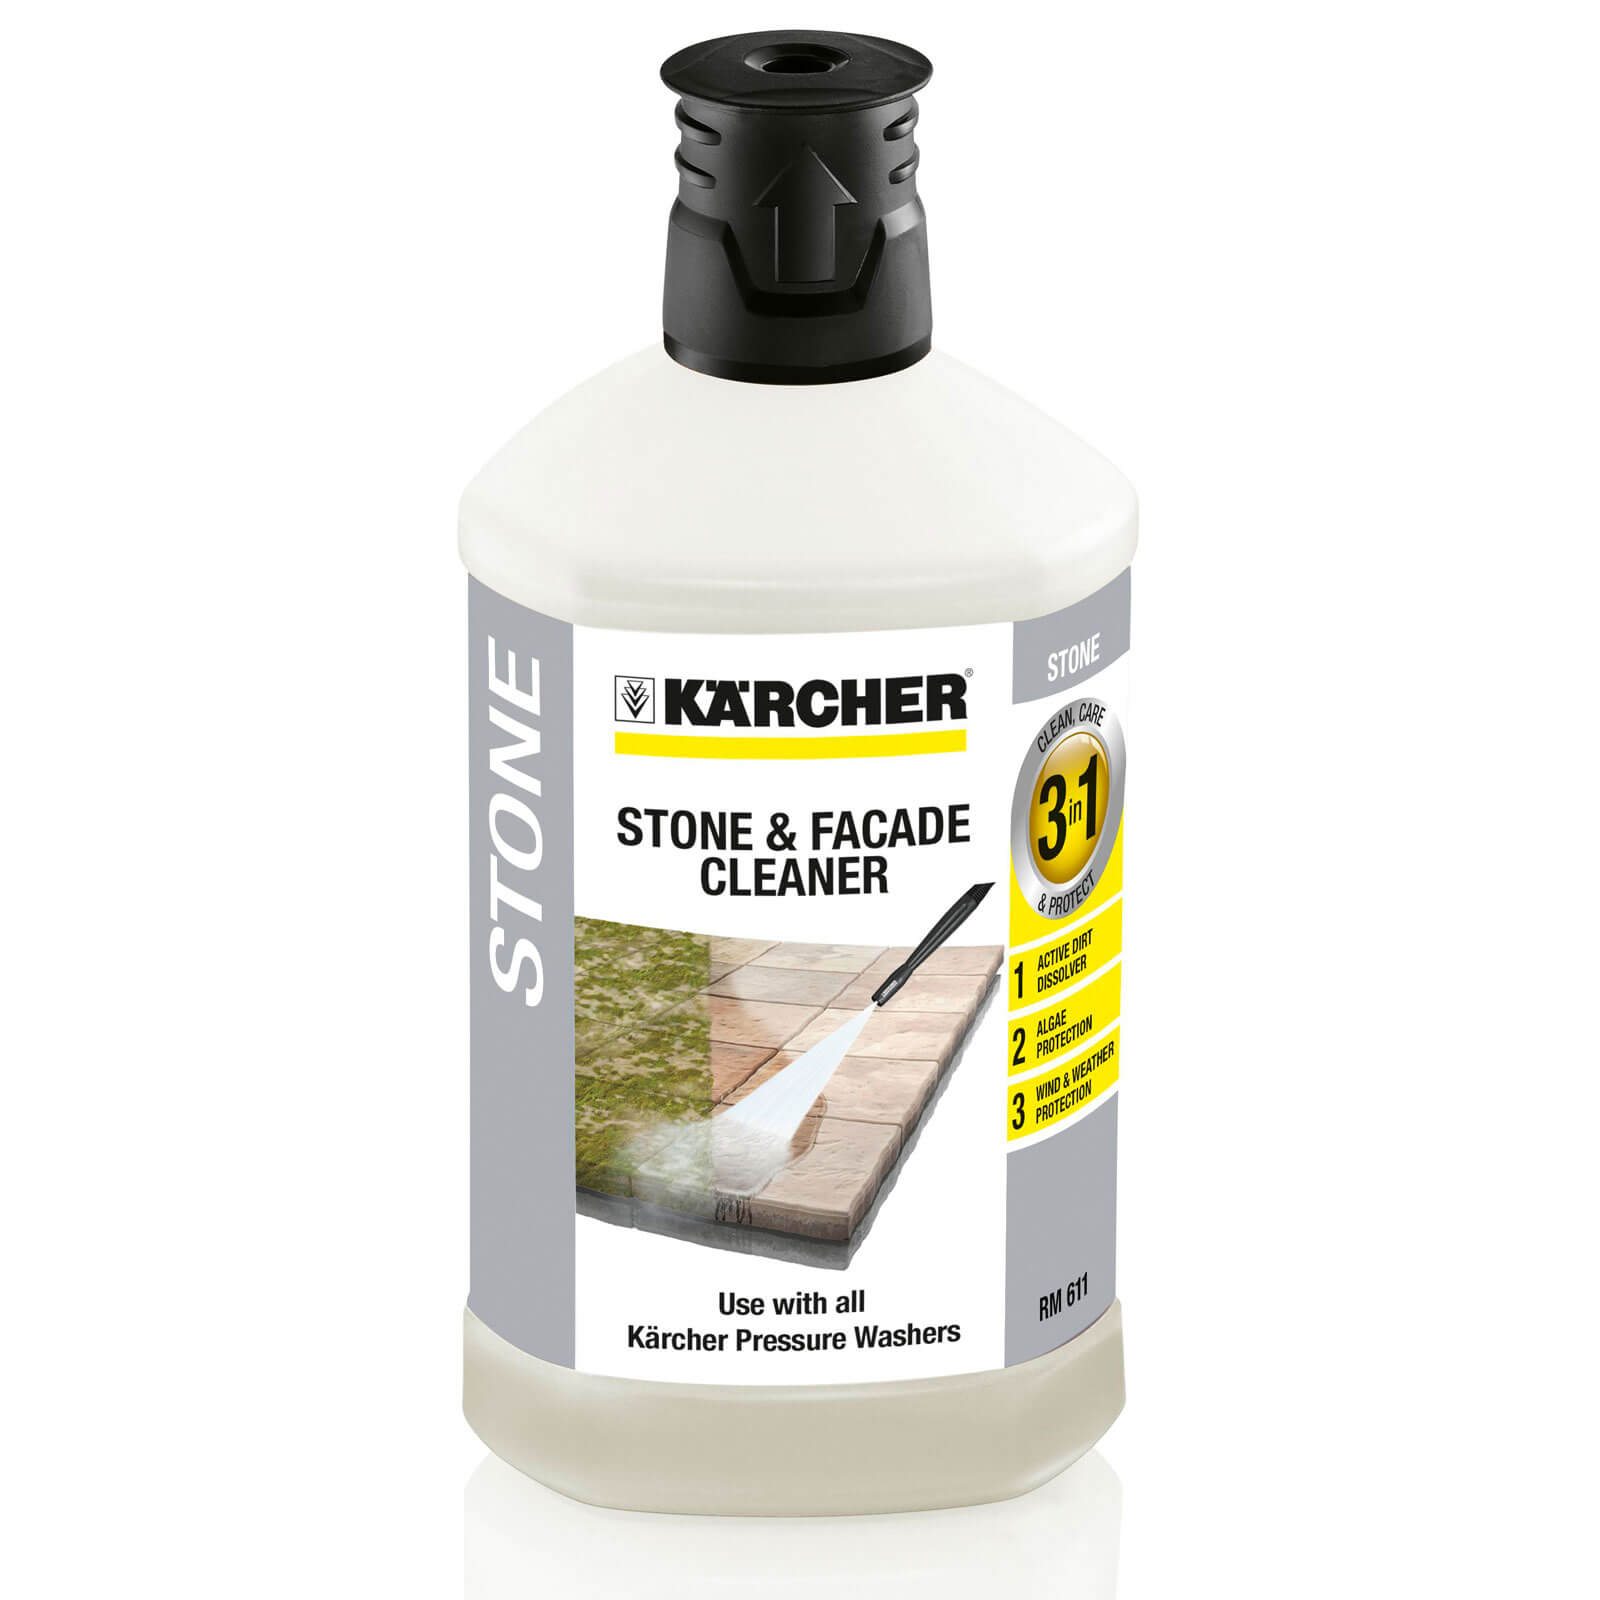 Karcher Multi Purpose Stone & Facade Plug n Clean Detergent 1 Litre for Pressure Washers